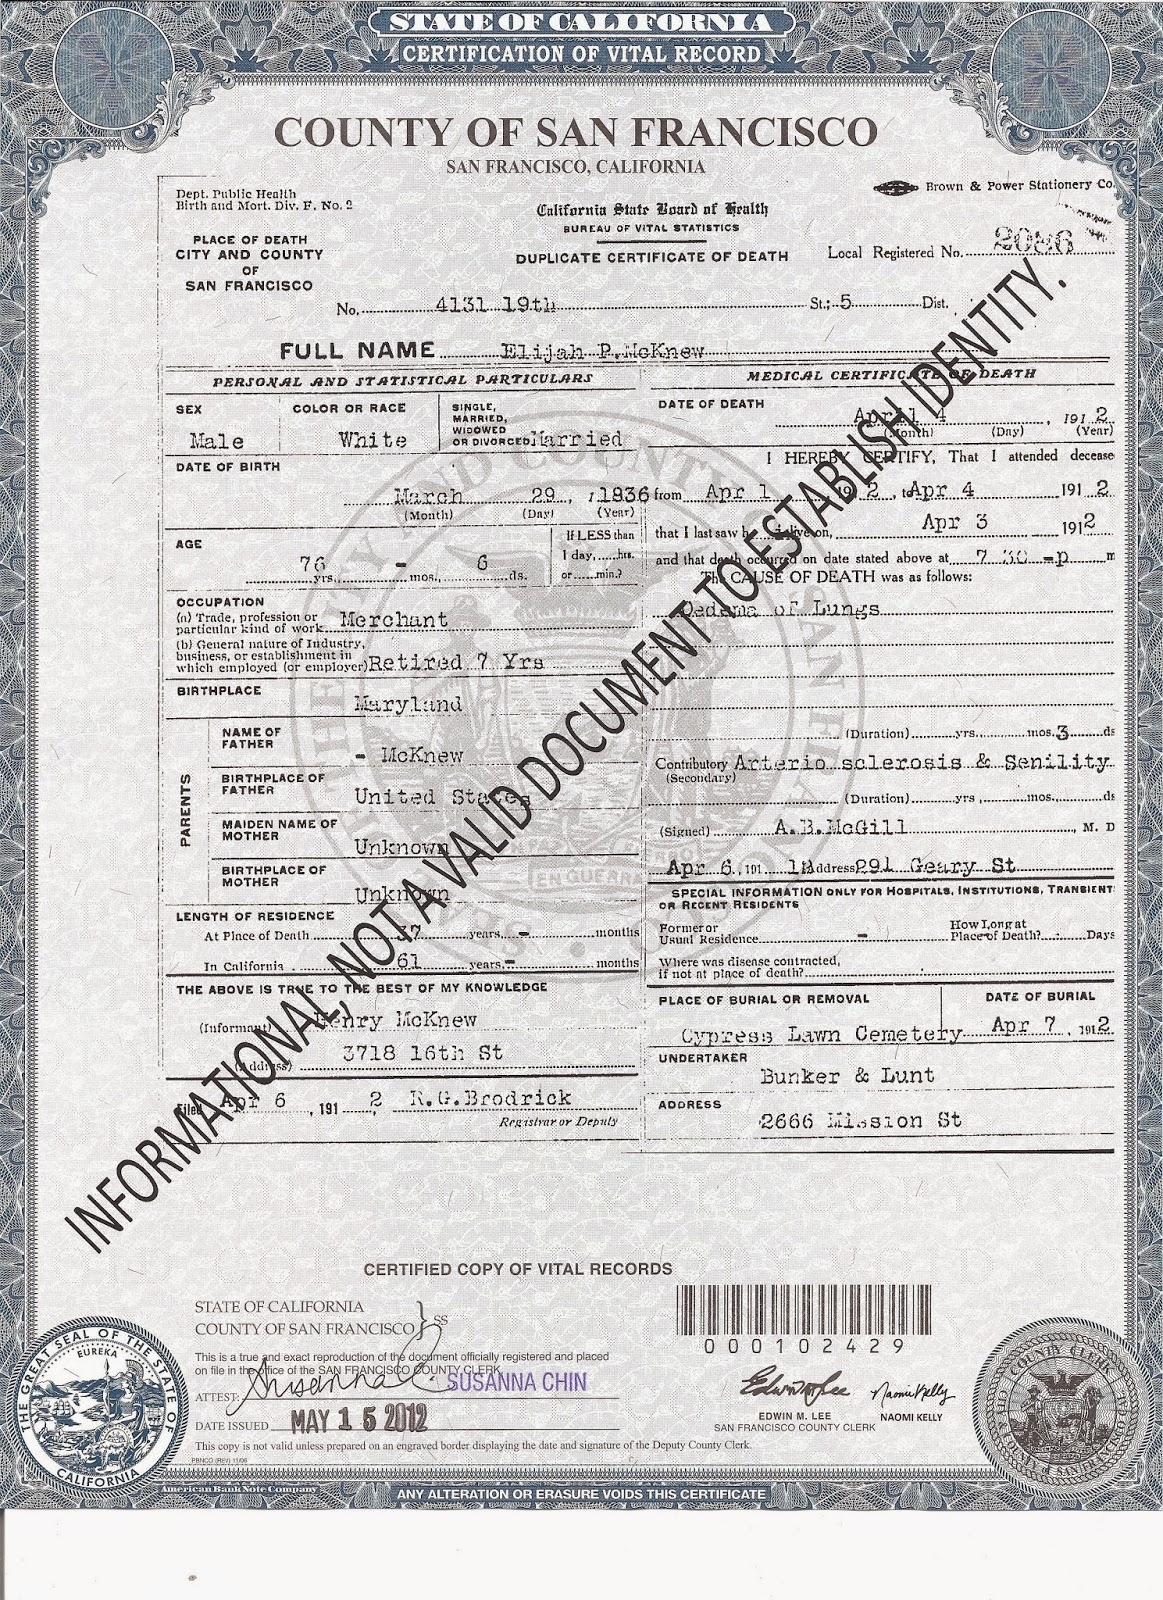 How to get my birth certificate from california best design your to get birth certificate apostilled in california aiddatafo Choice Image